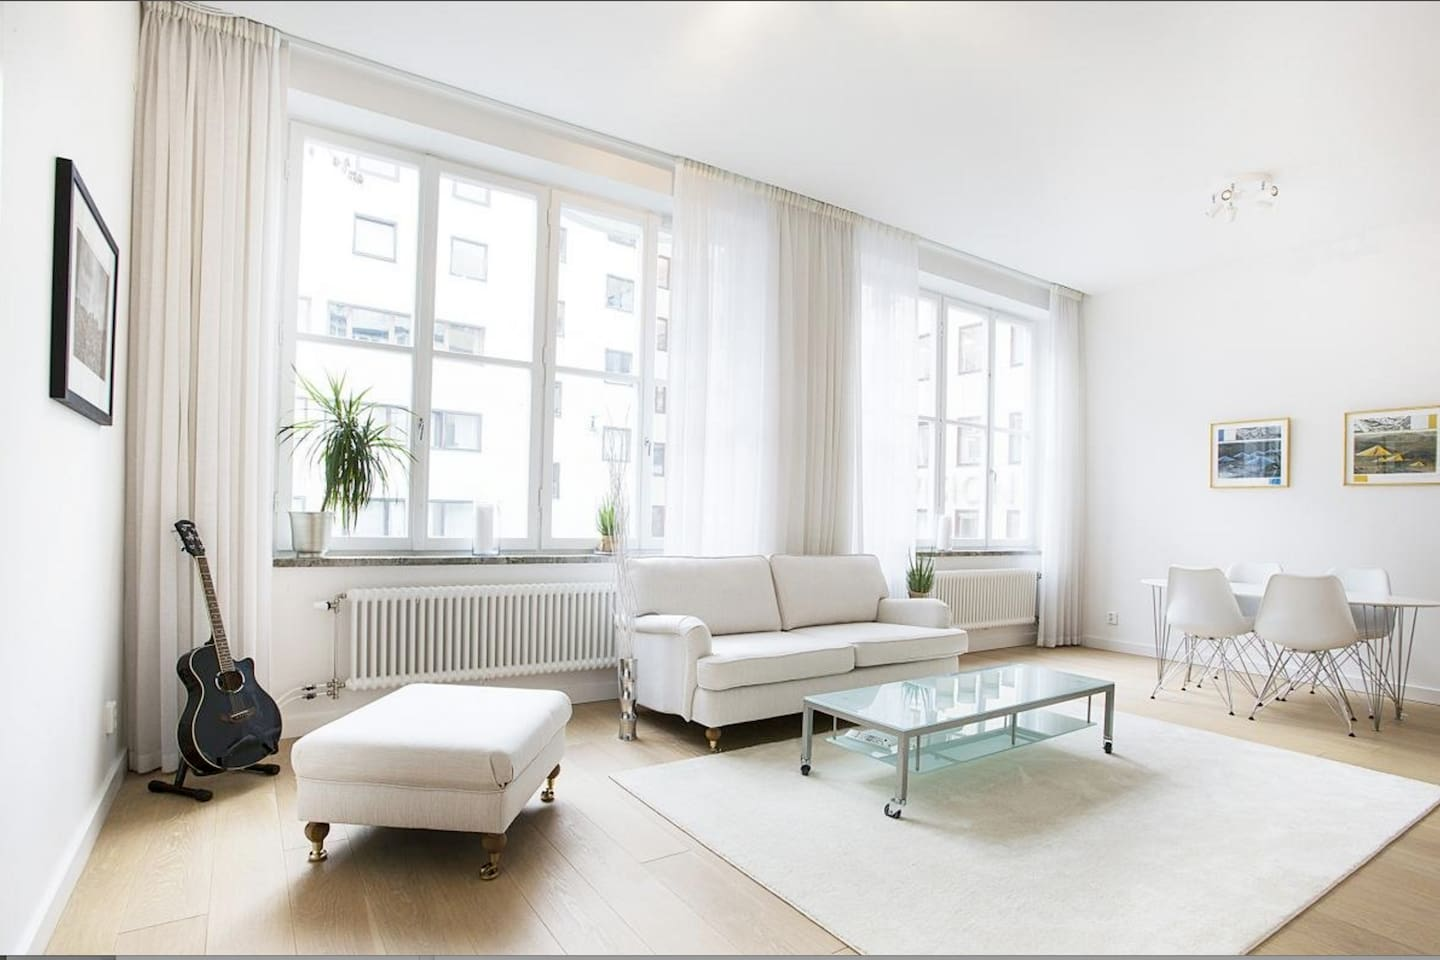 """Very sunny and bright place with high ceilings, kitchen and bathroom new. The perfect """"hotel suite""""  in the epicenter of Stockholm."""